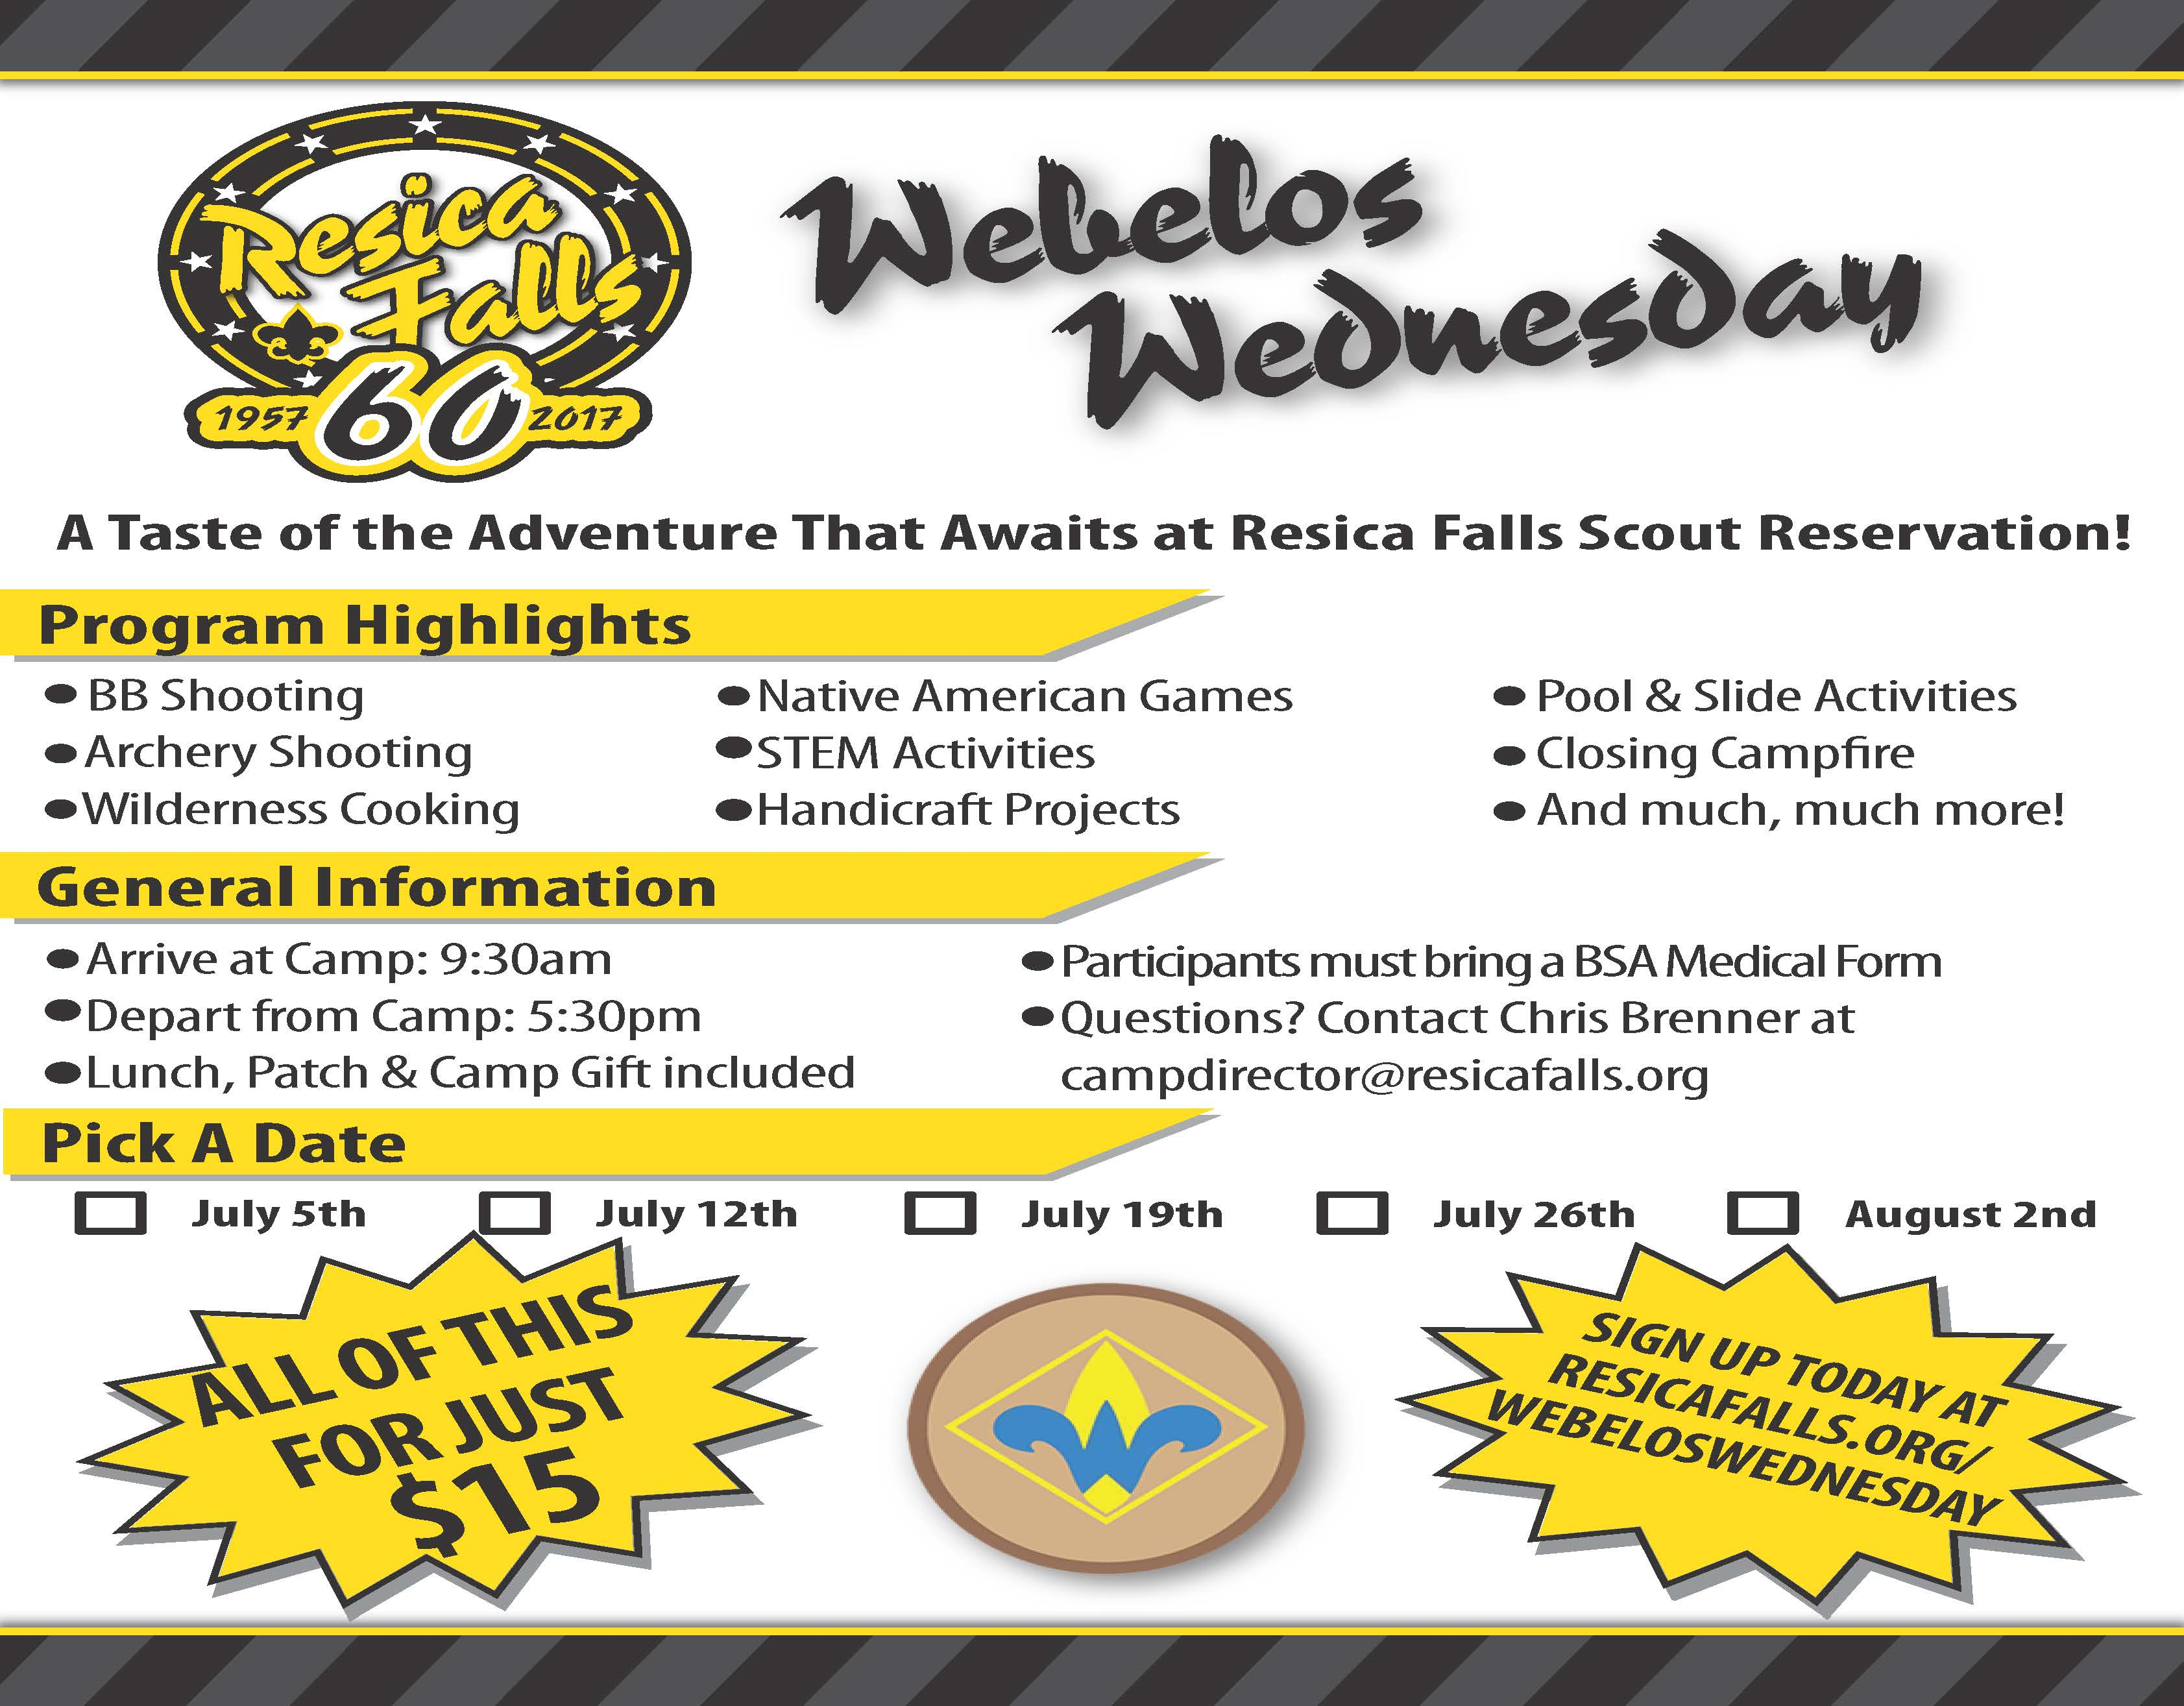 Webelos Wednesday at Resica Falls August 2, 2017